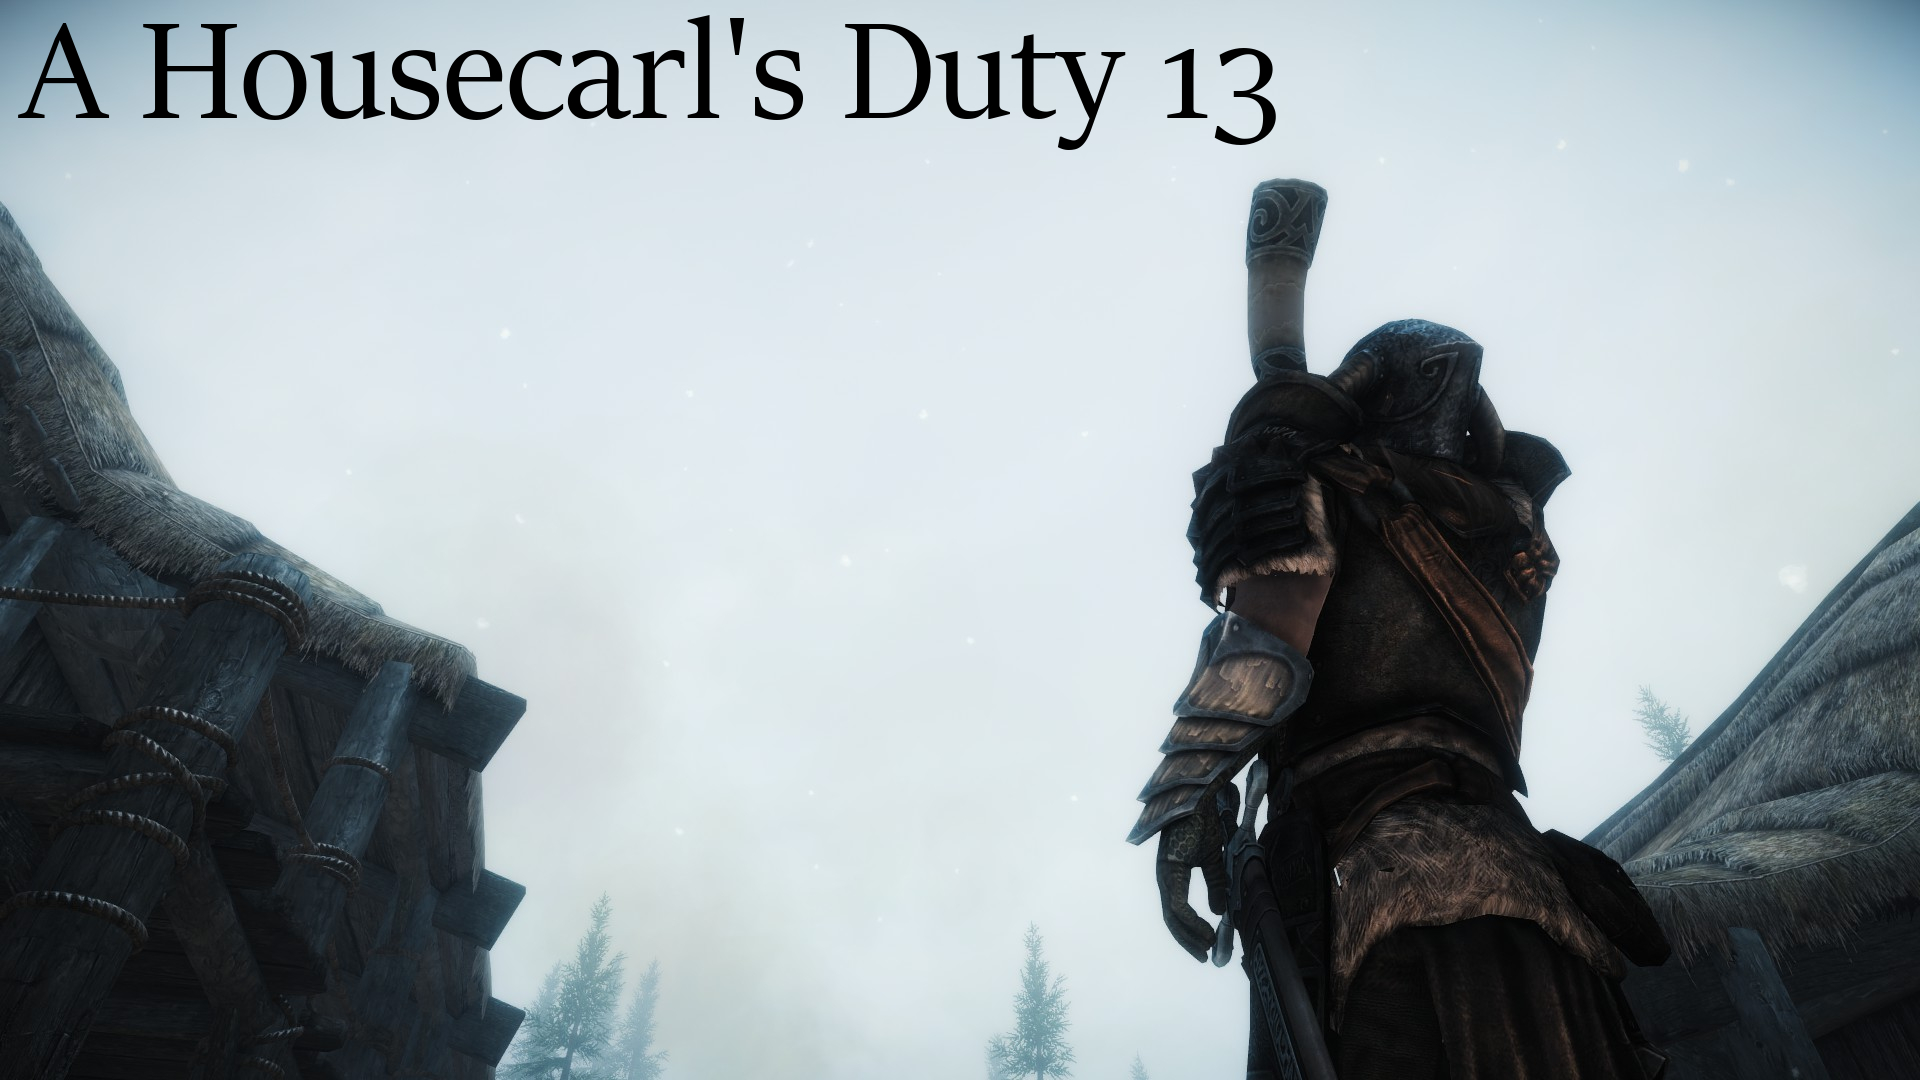 A Housecarl's Duty 13 - Back To Balgruuf